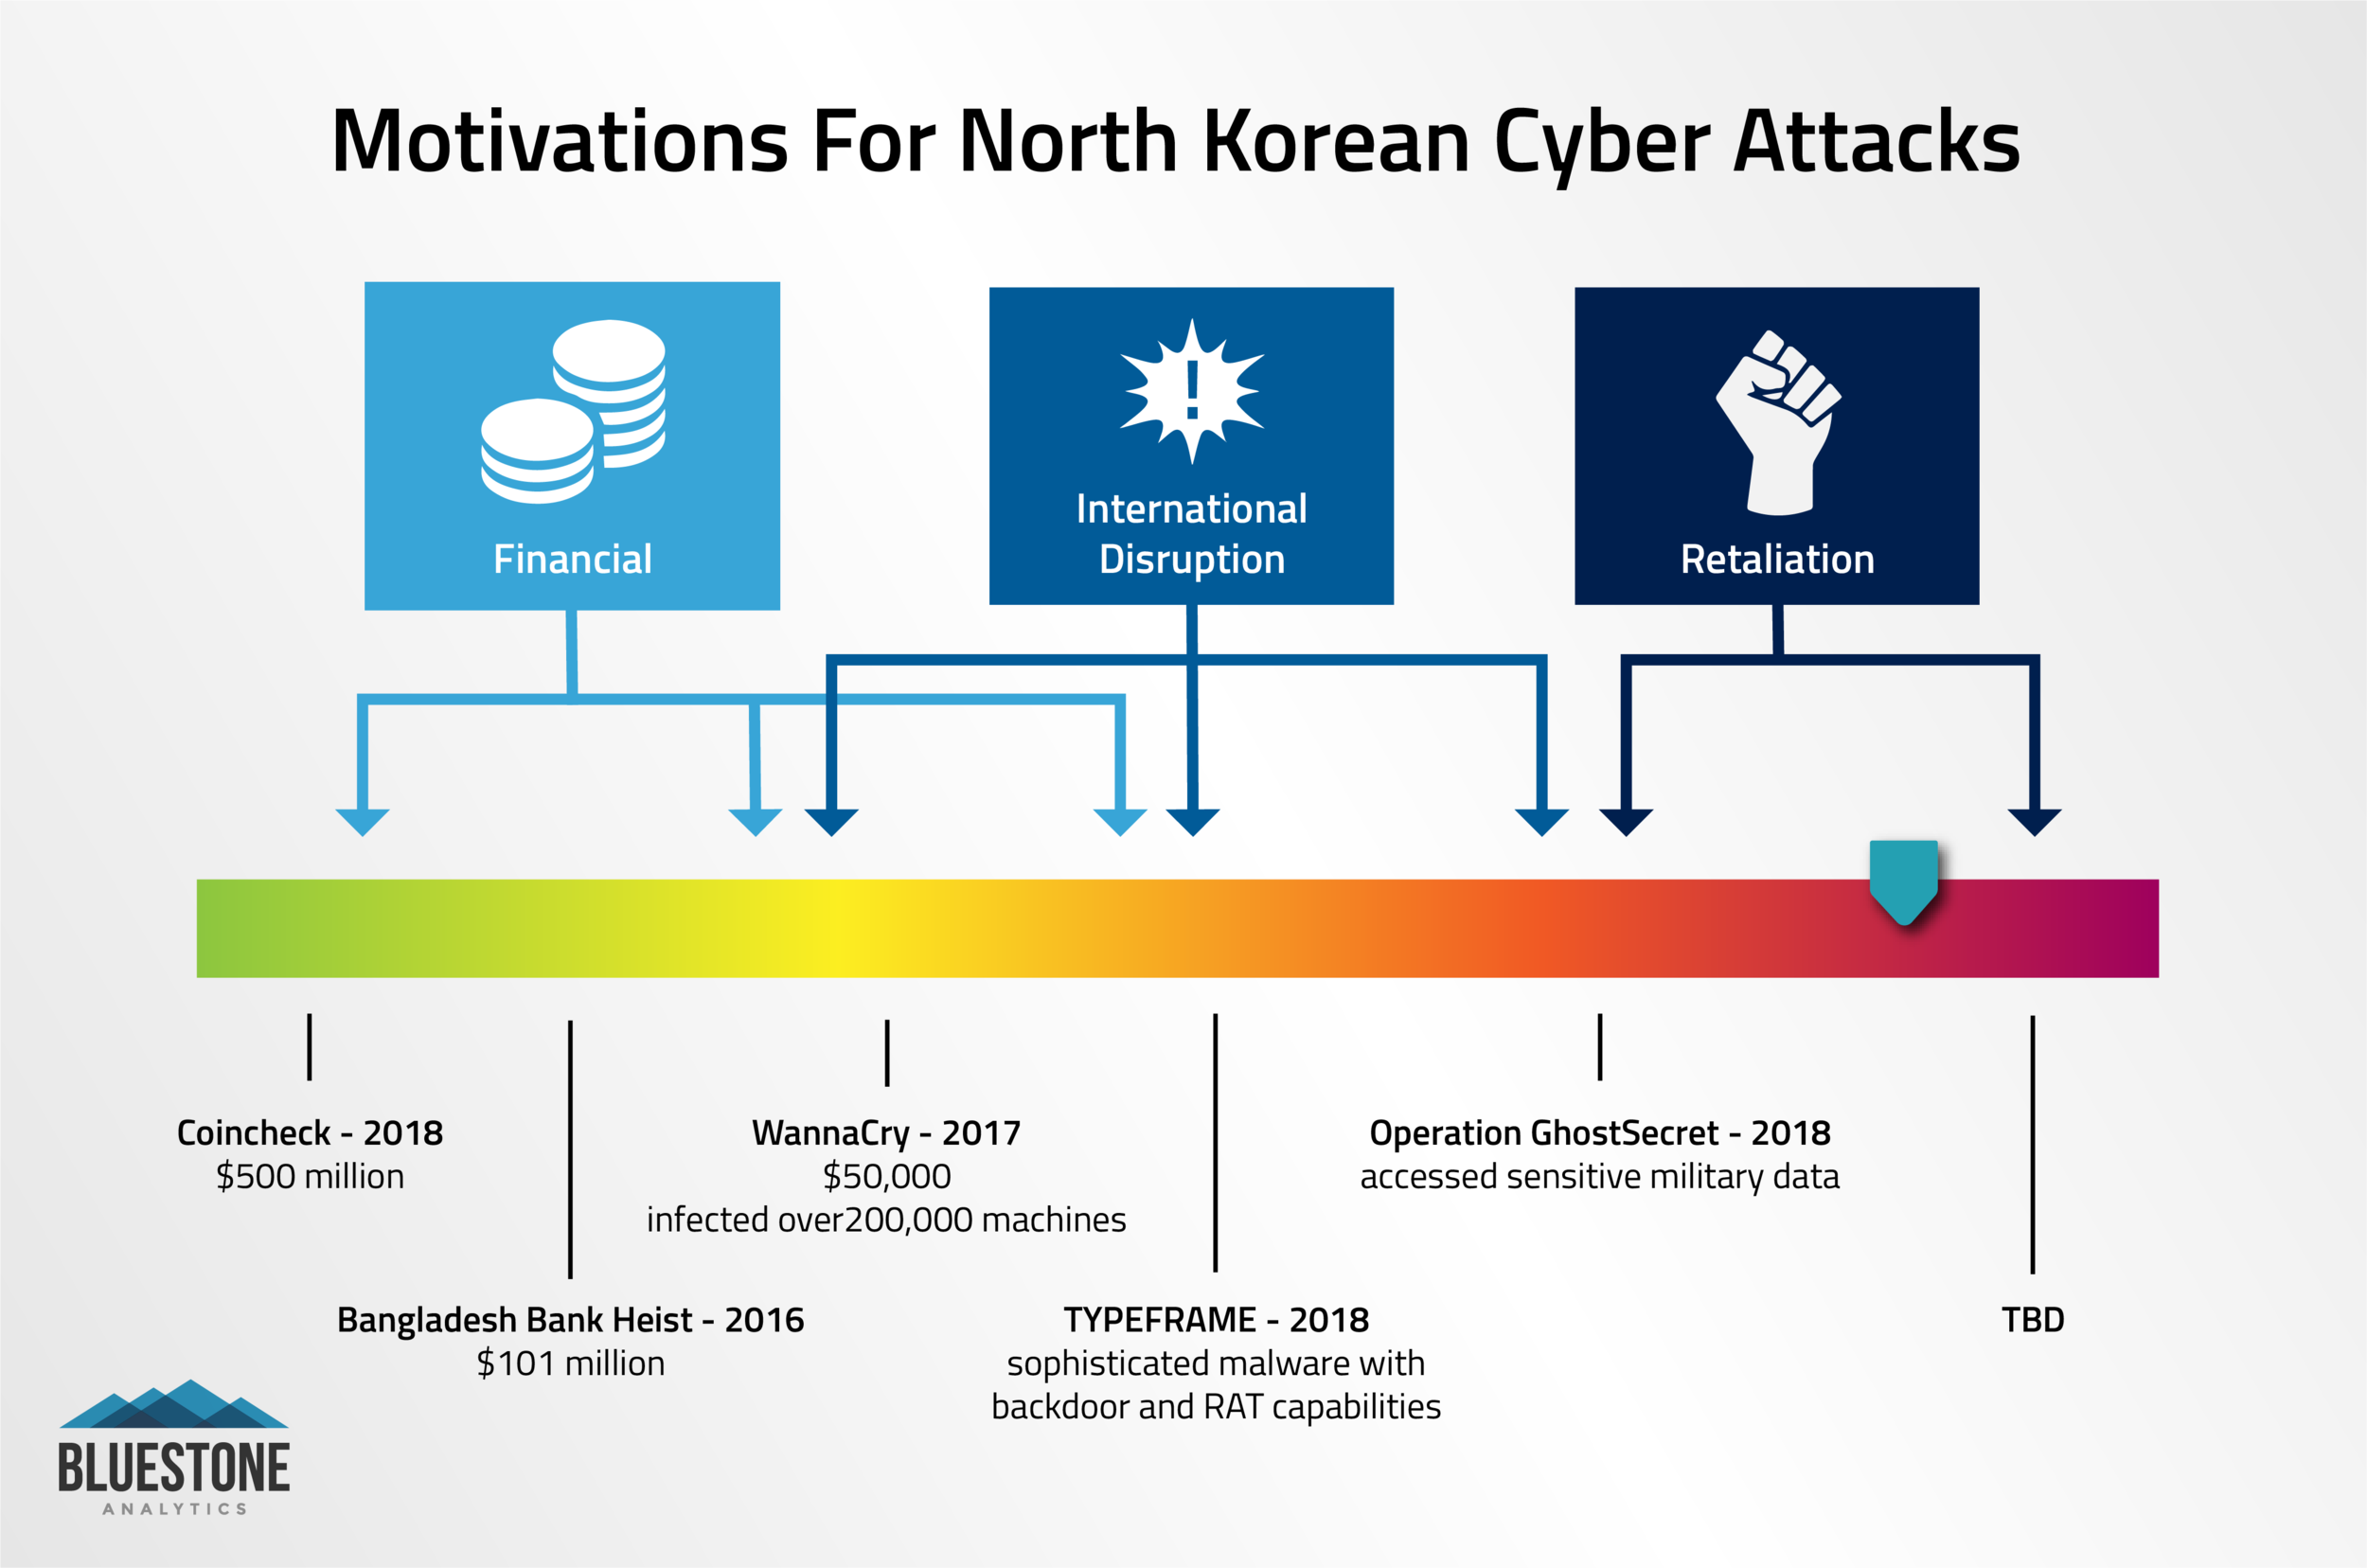 North Korea Cyber Attack Motivation